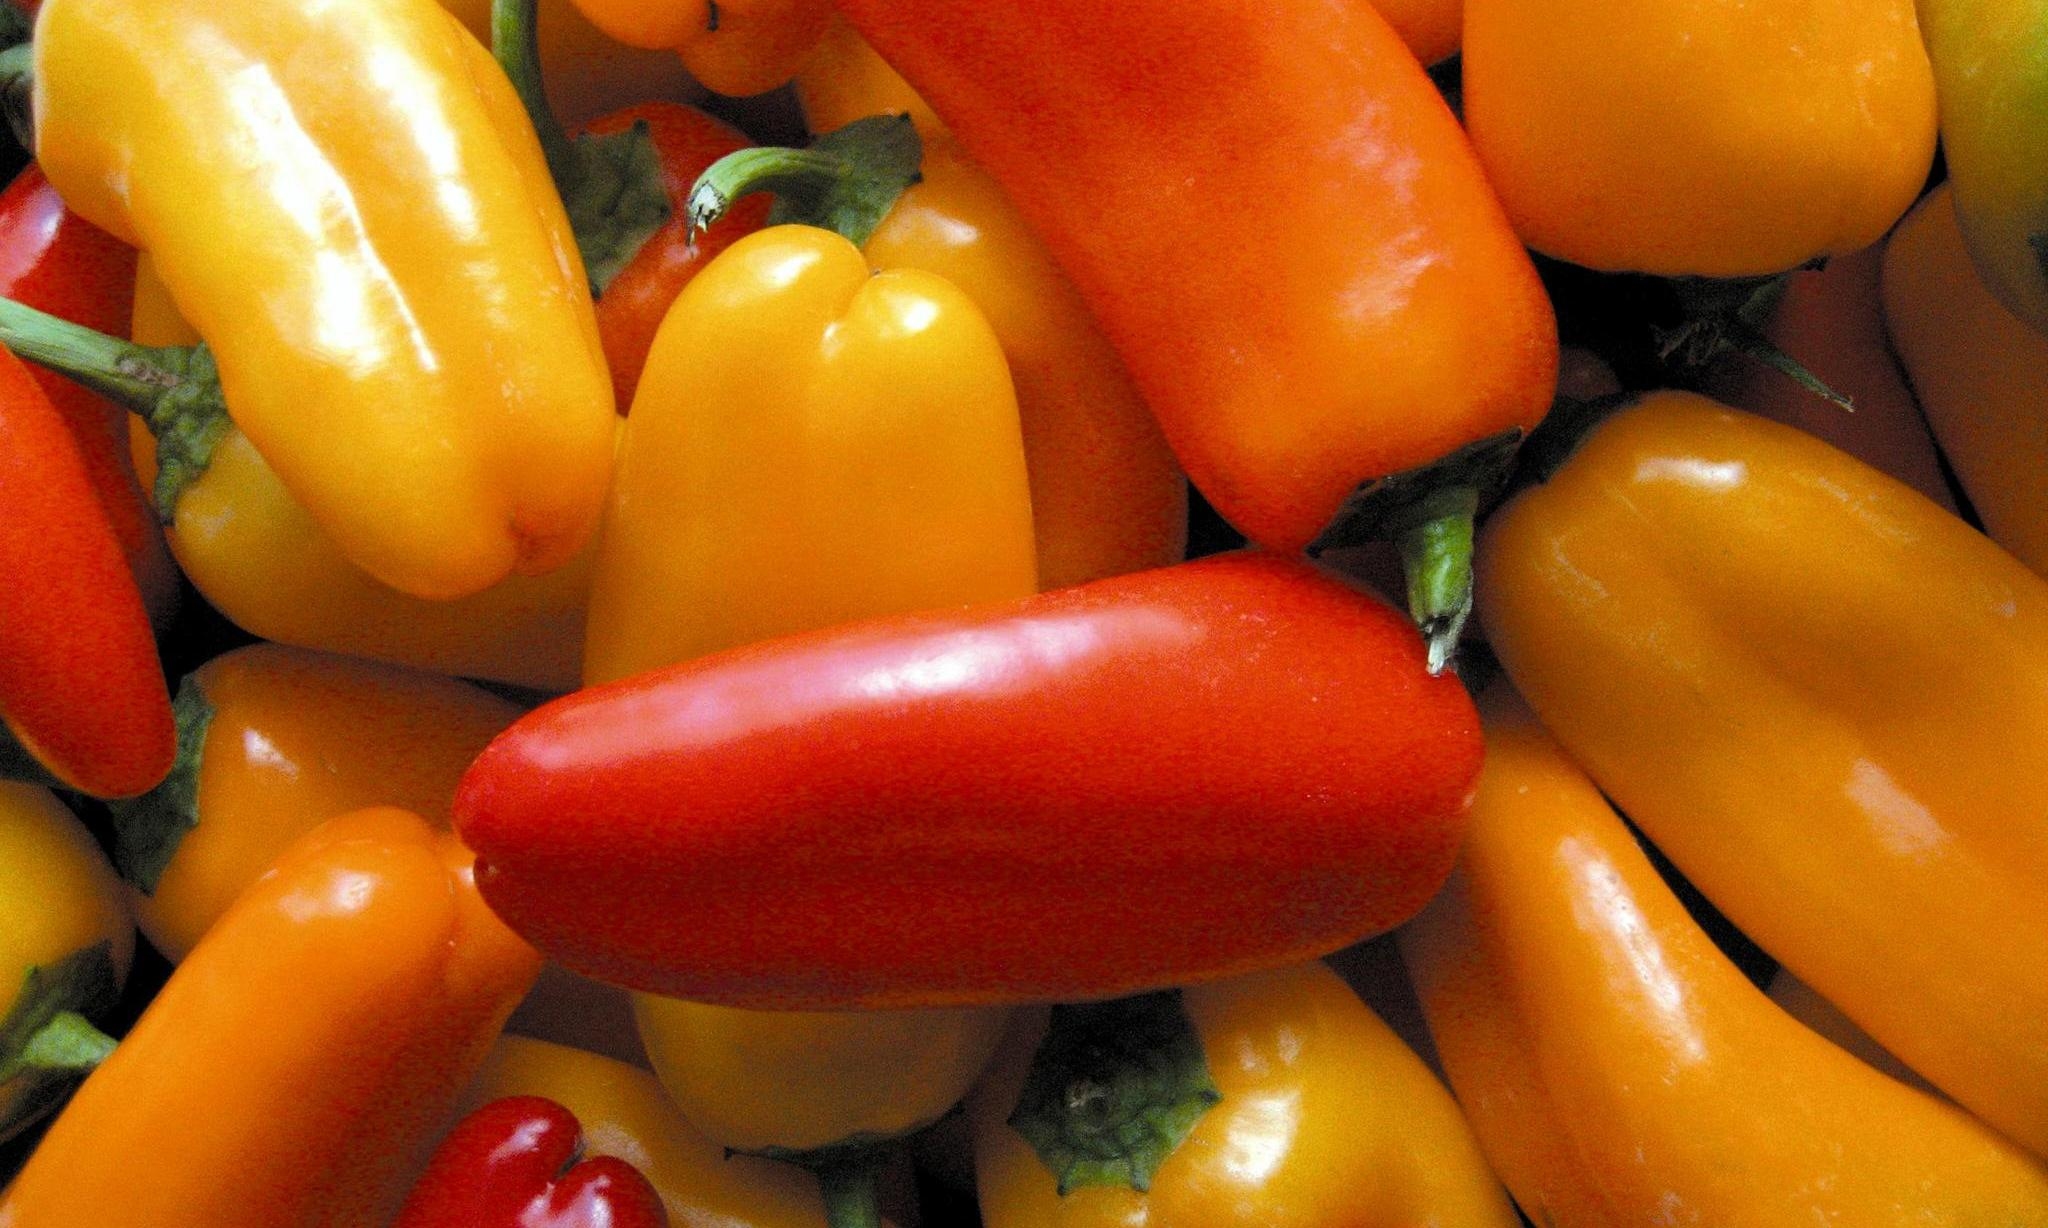 Frequent spicy meals linked to human longevity